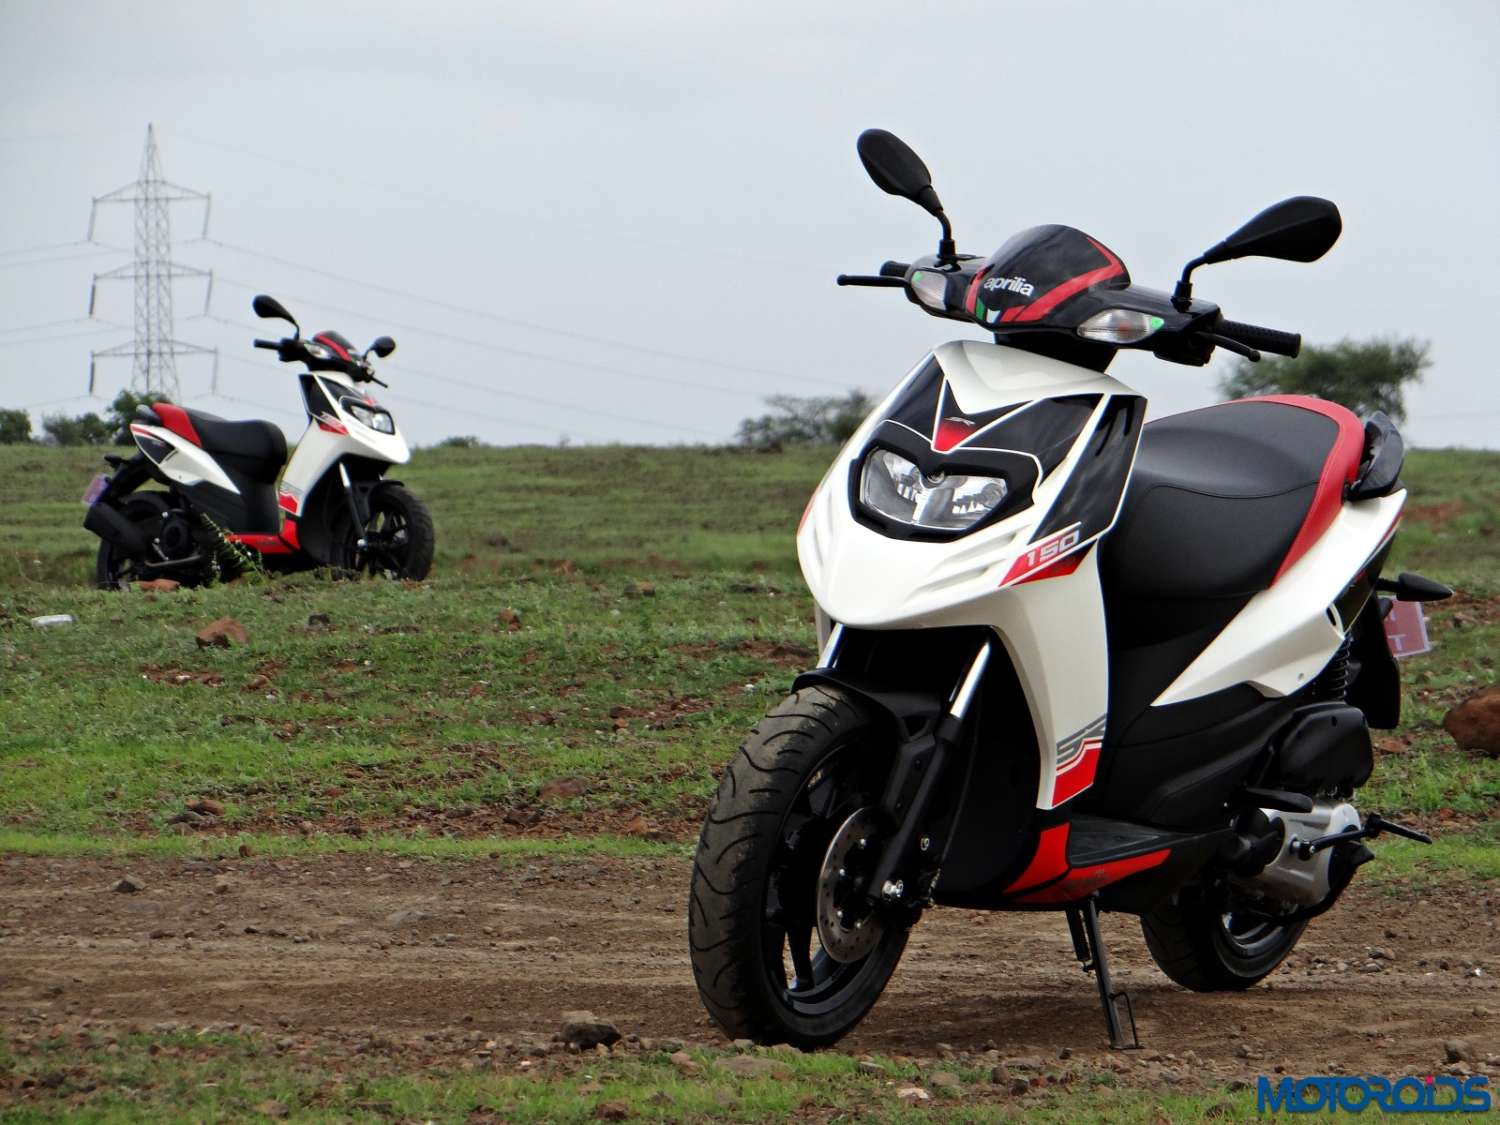 Aprilia SR 150 Review - Still Shots (24)